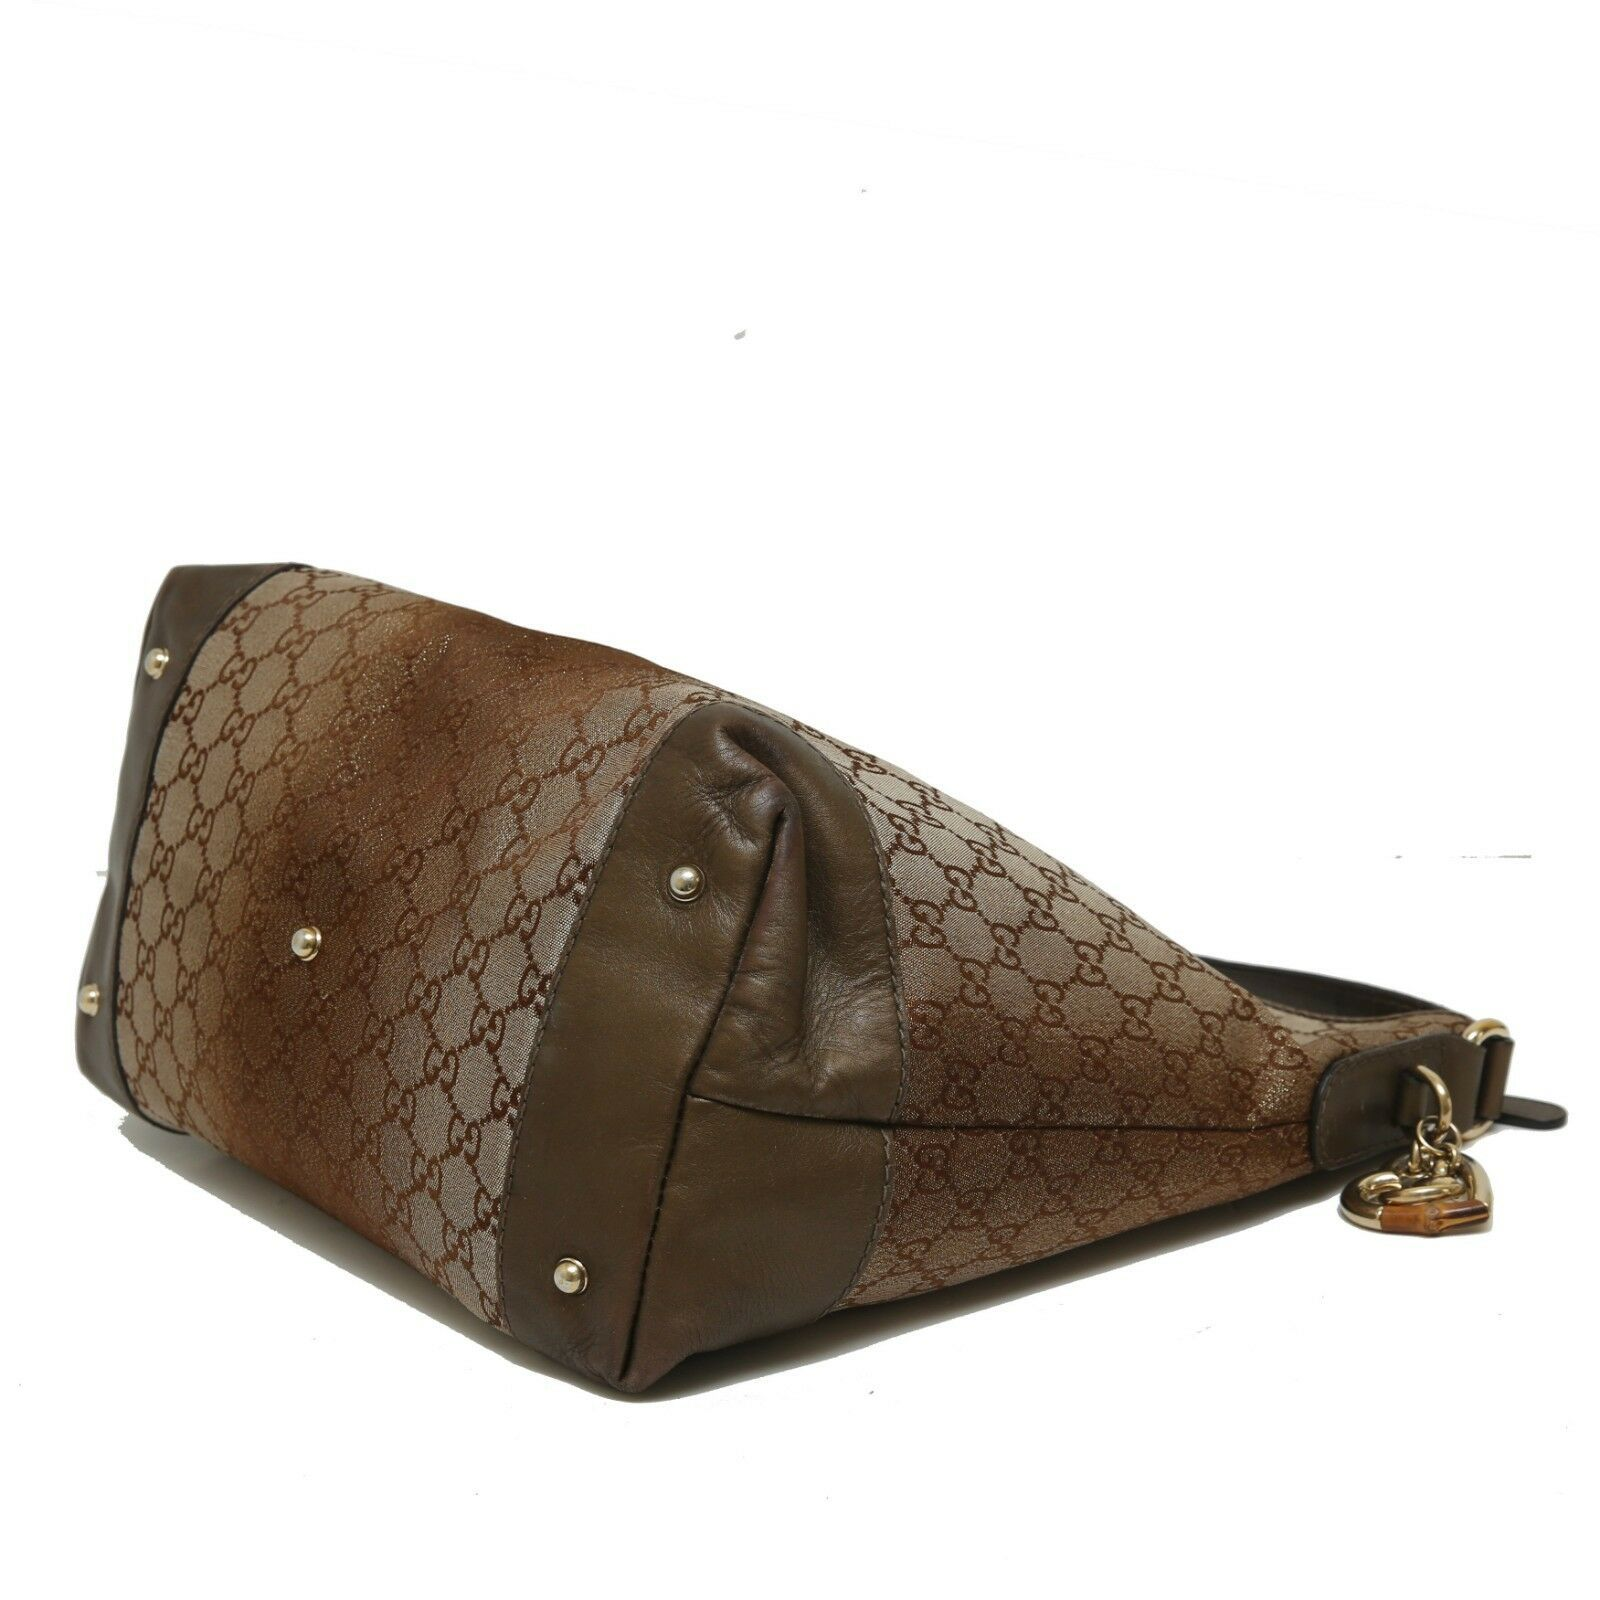 Authentic GUCCI Guccissima Canvas Glitter Hobo Bag with Heart Motif Leather Trim